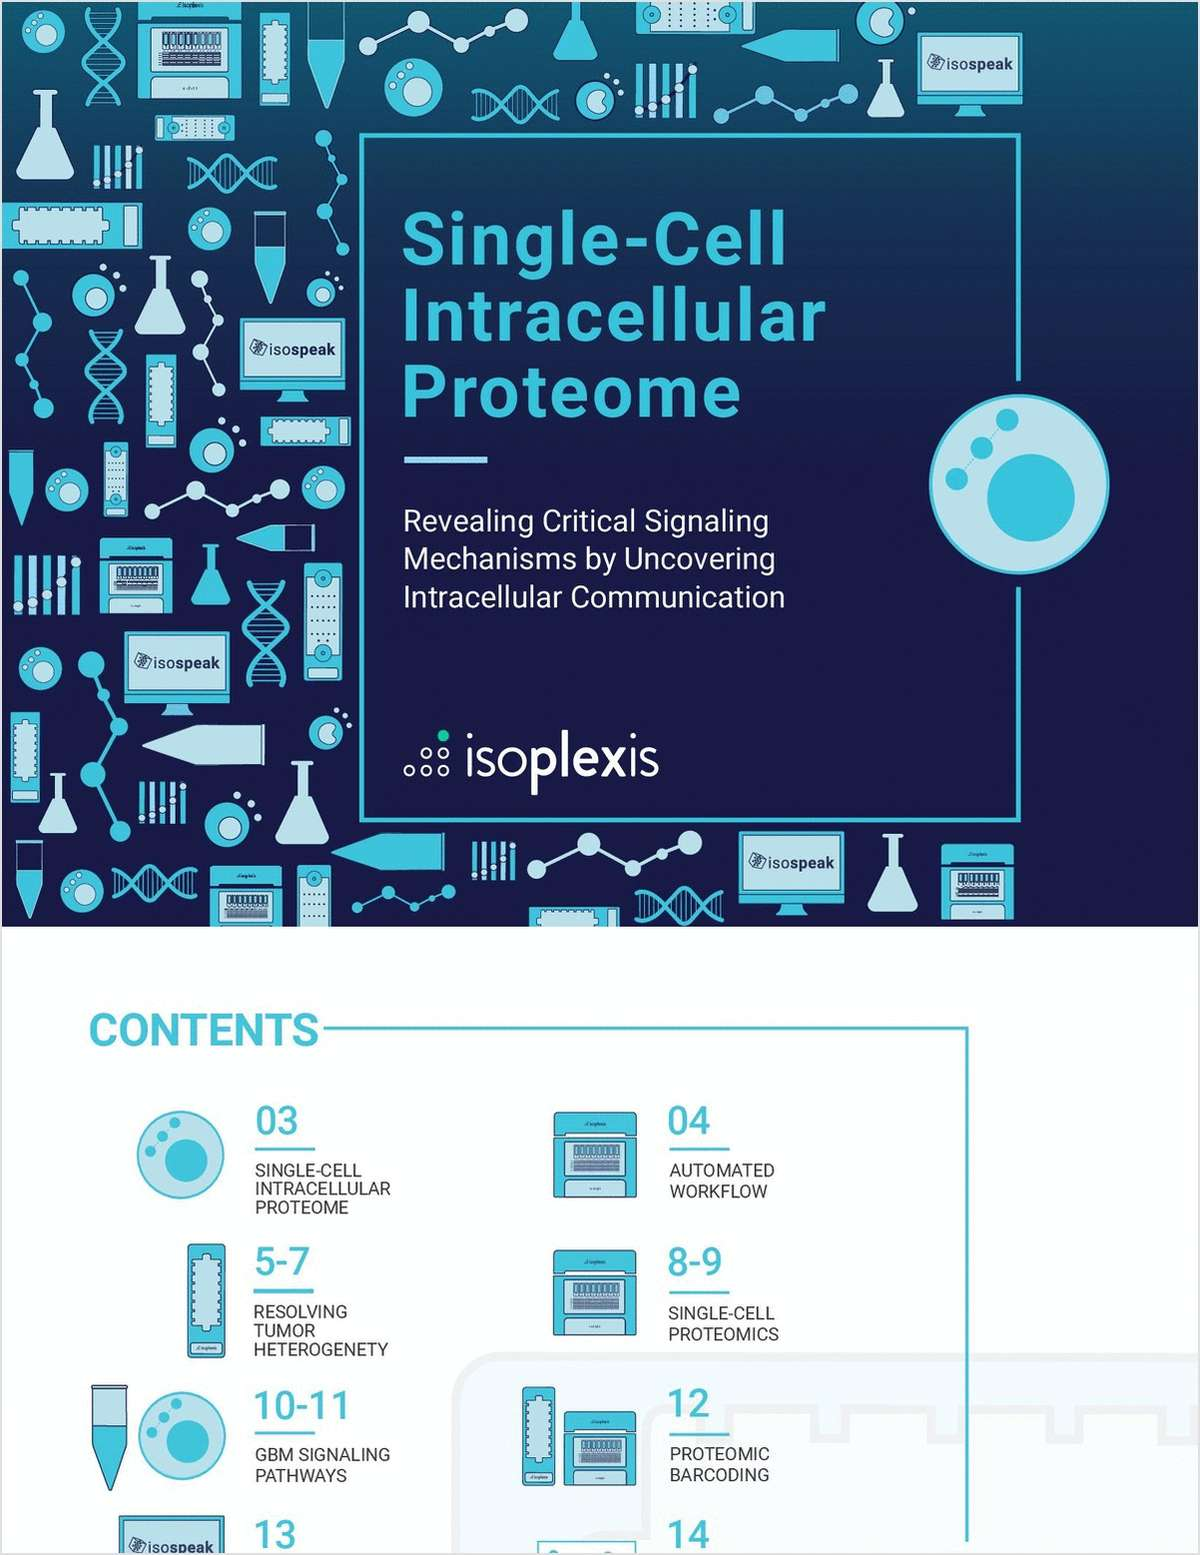 Single-Cell Intracellular Proteome